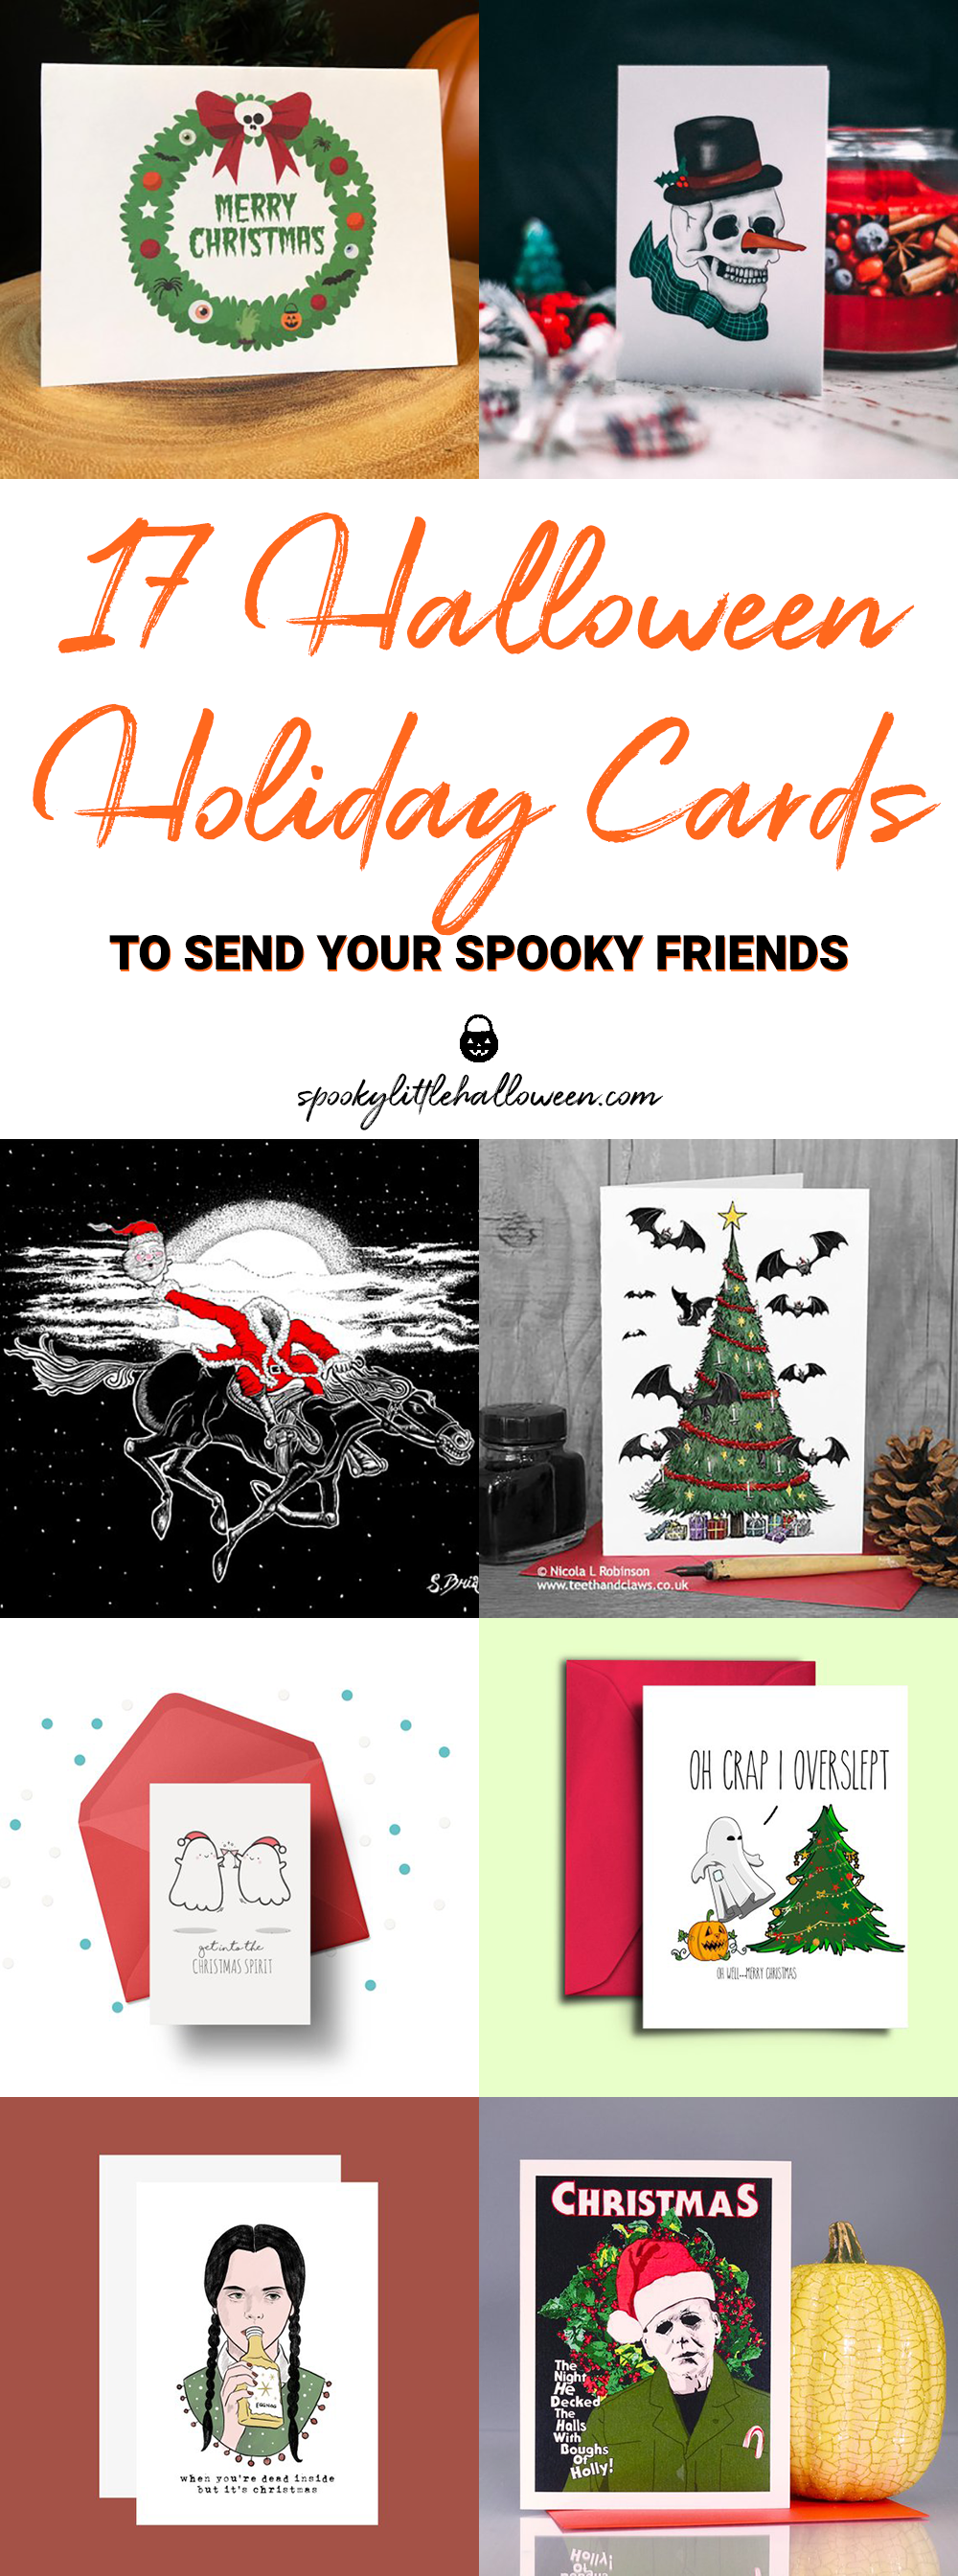 17 Halloween Holiday Cards to Send Your Spooky Friends - Spooky ...